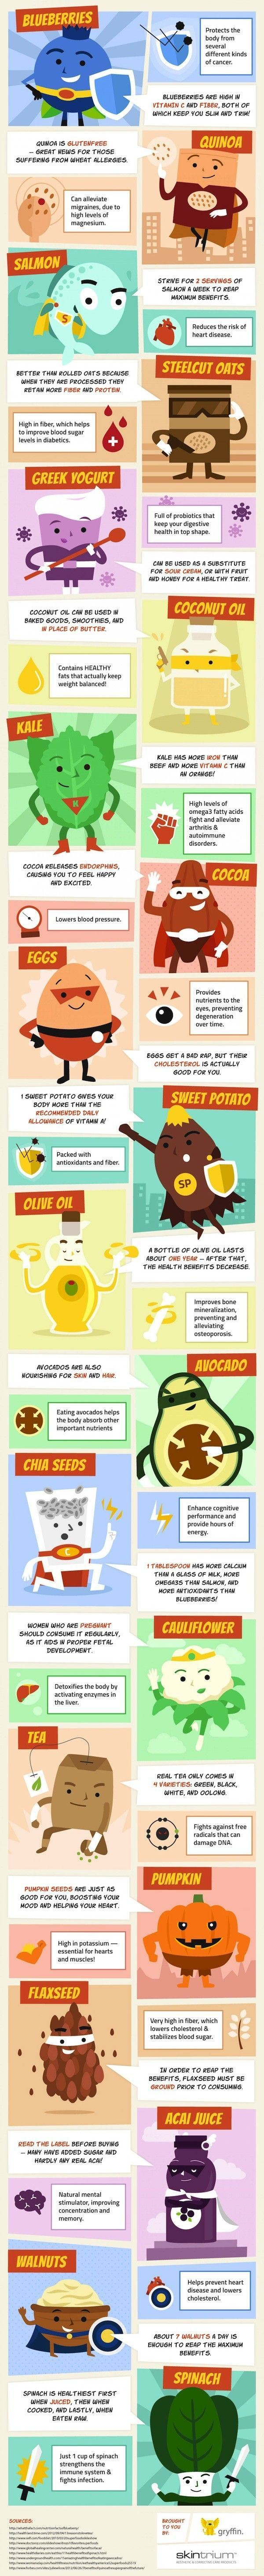 The Ultimate Guide To Superfoods